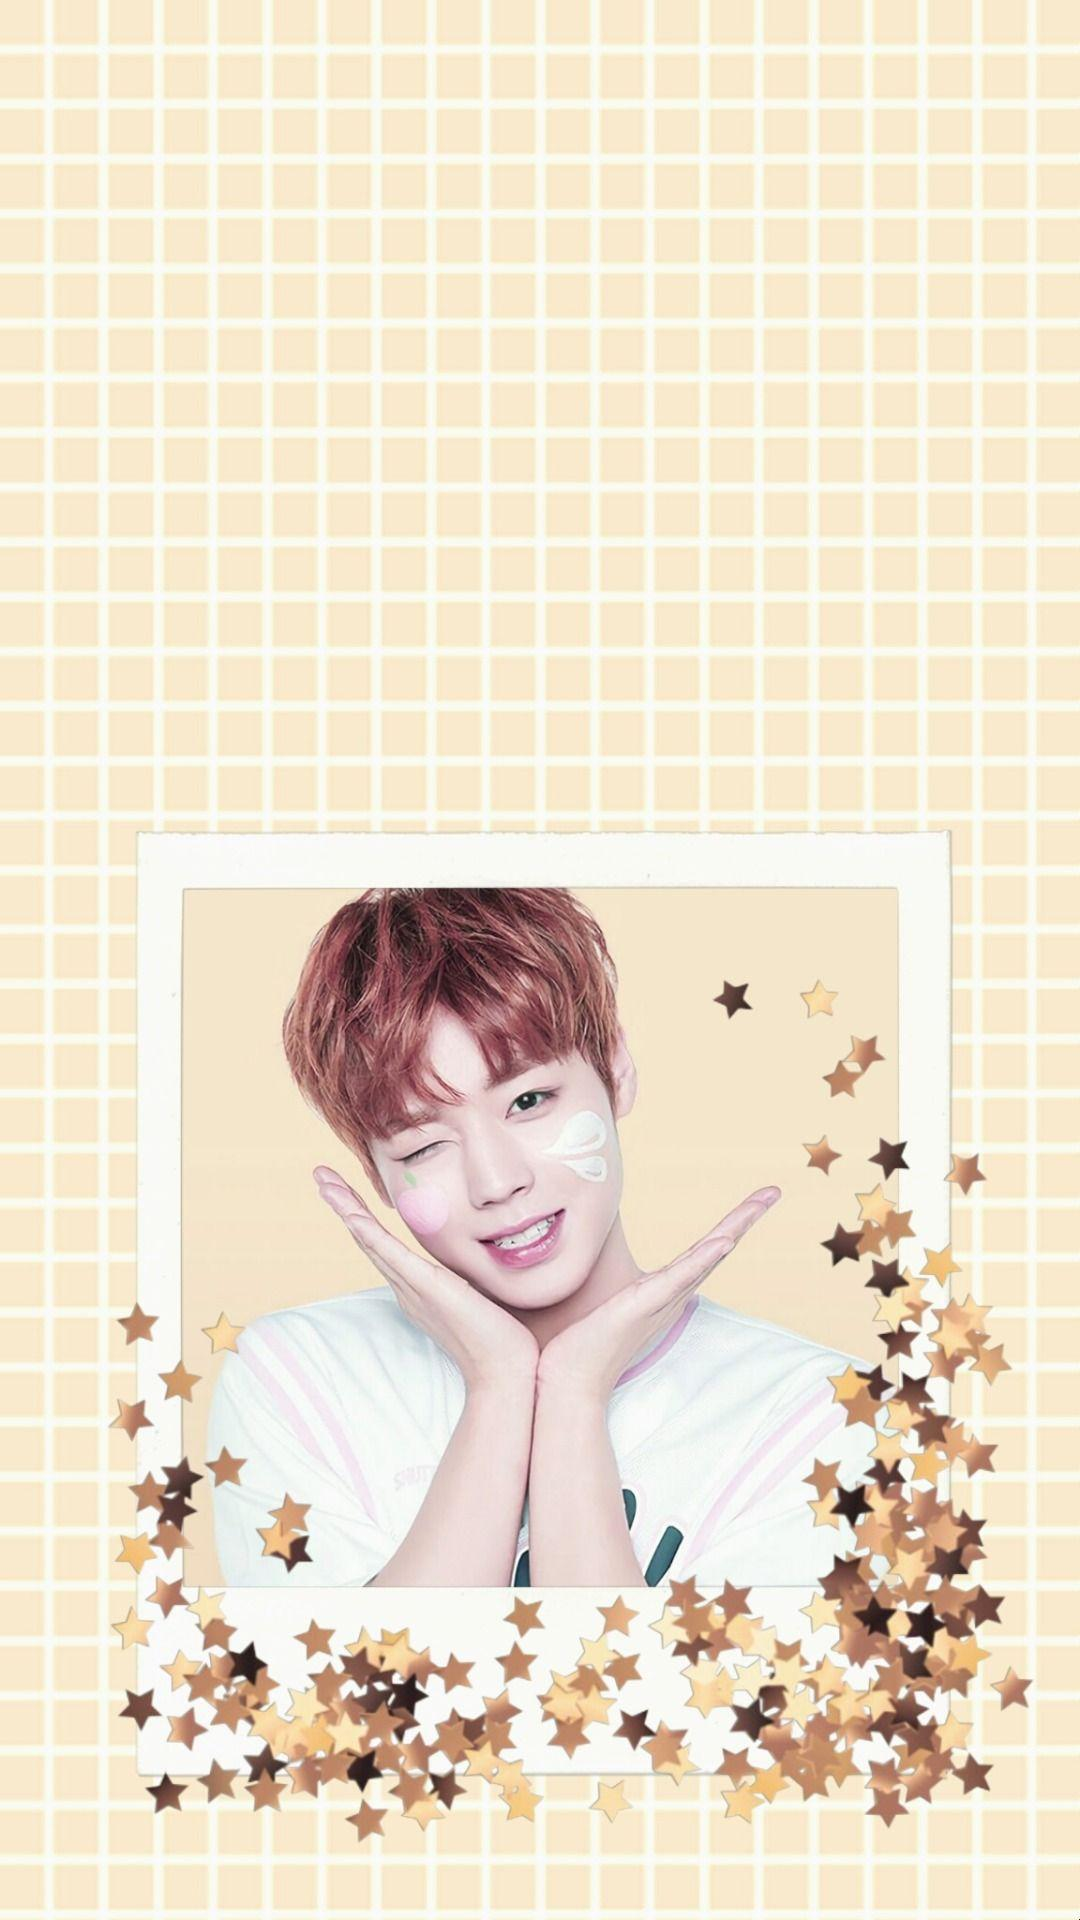 jihoon like or reblog if you save please... - KPOP LOCKSCREEN